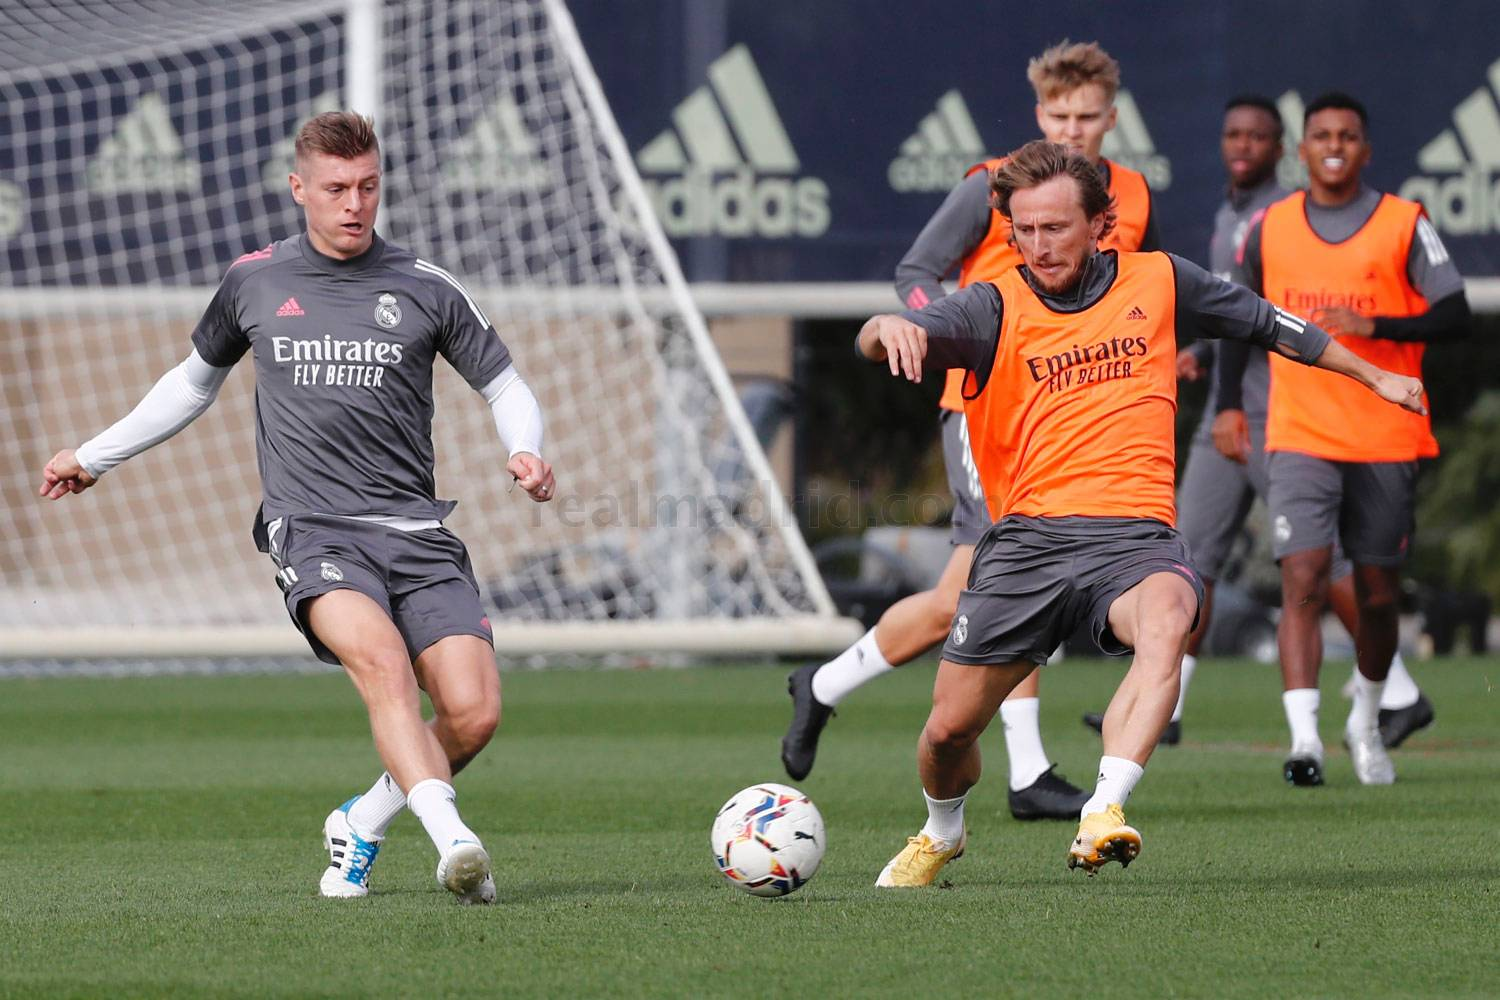 Real Madrid - Entrenamiento del Real Madrid  - 06-11-2020